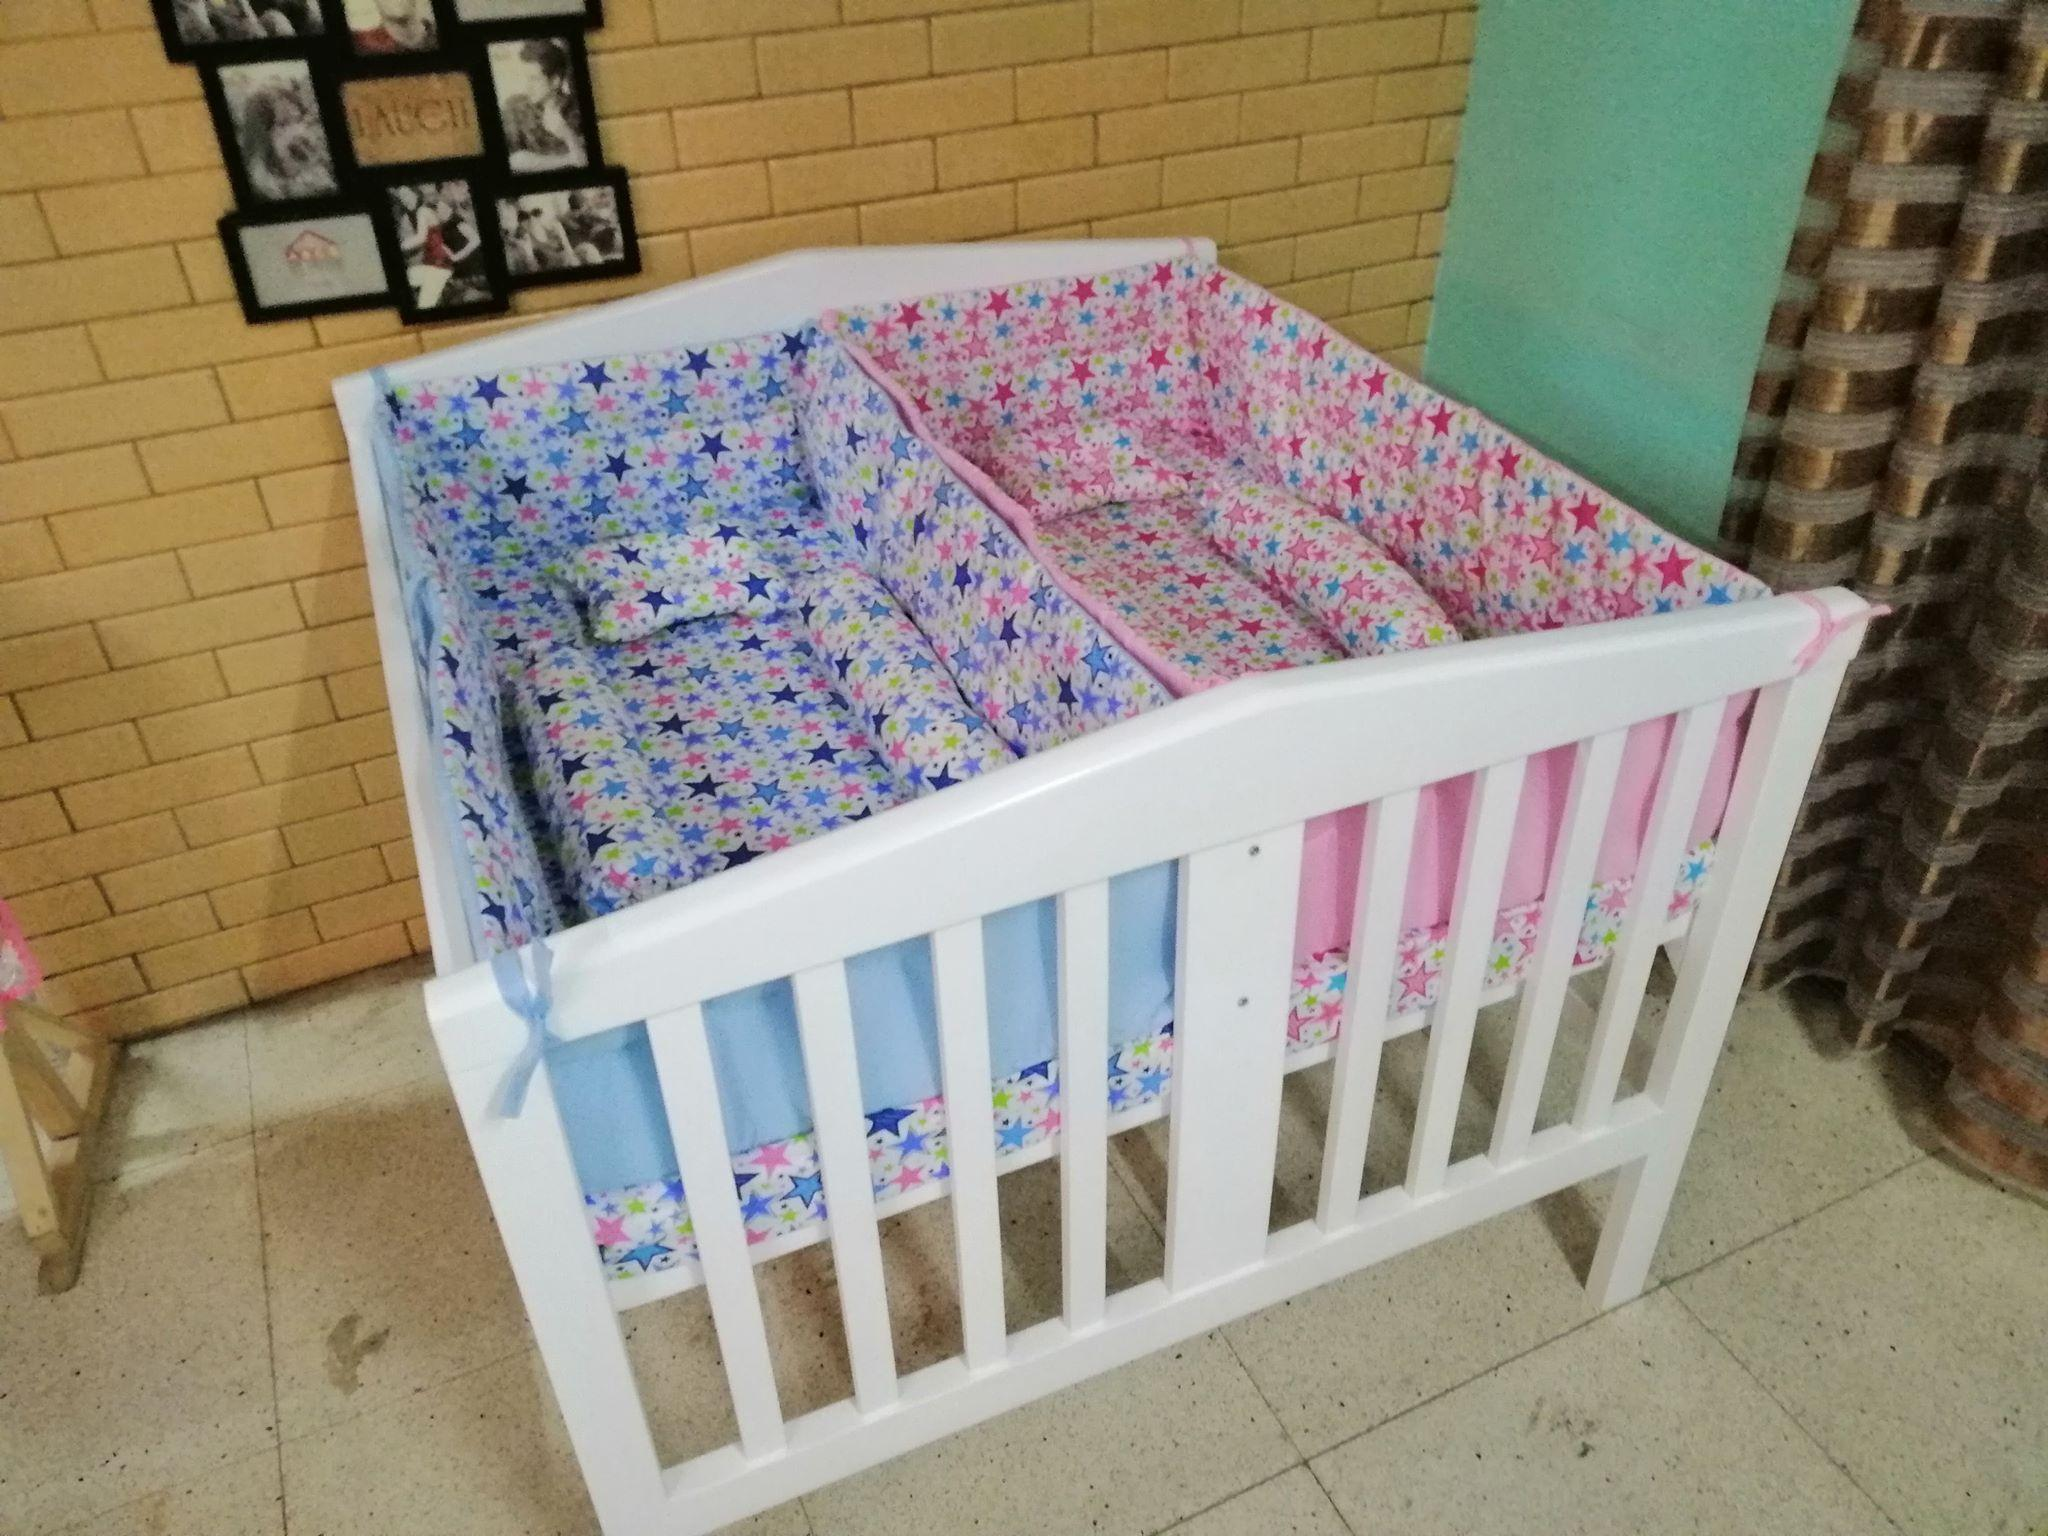 50a4c9ee490 Baby Beddings for sale - Baby Mattress online brands